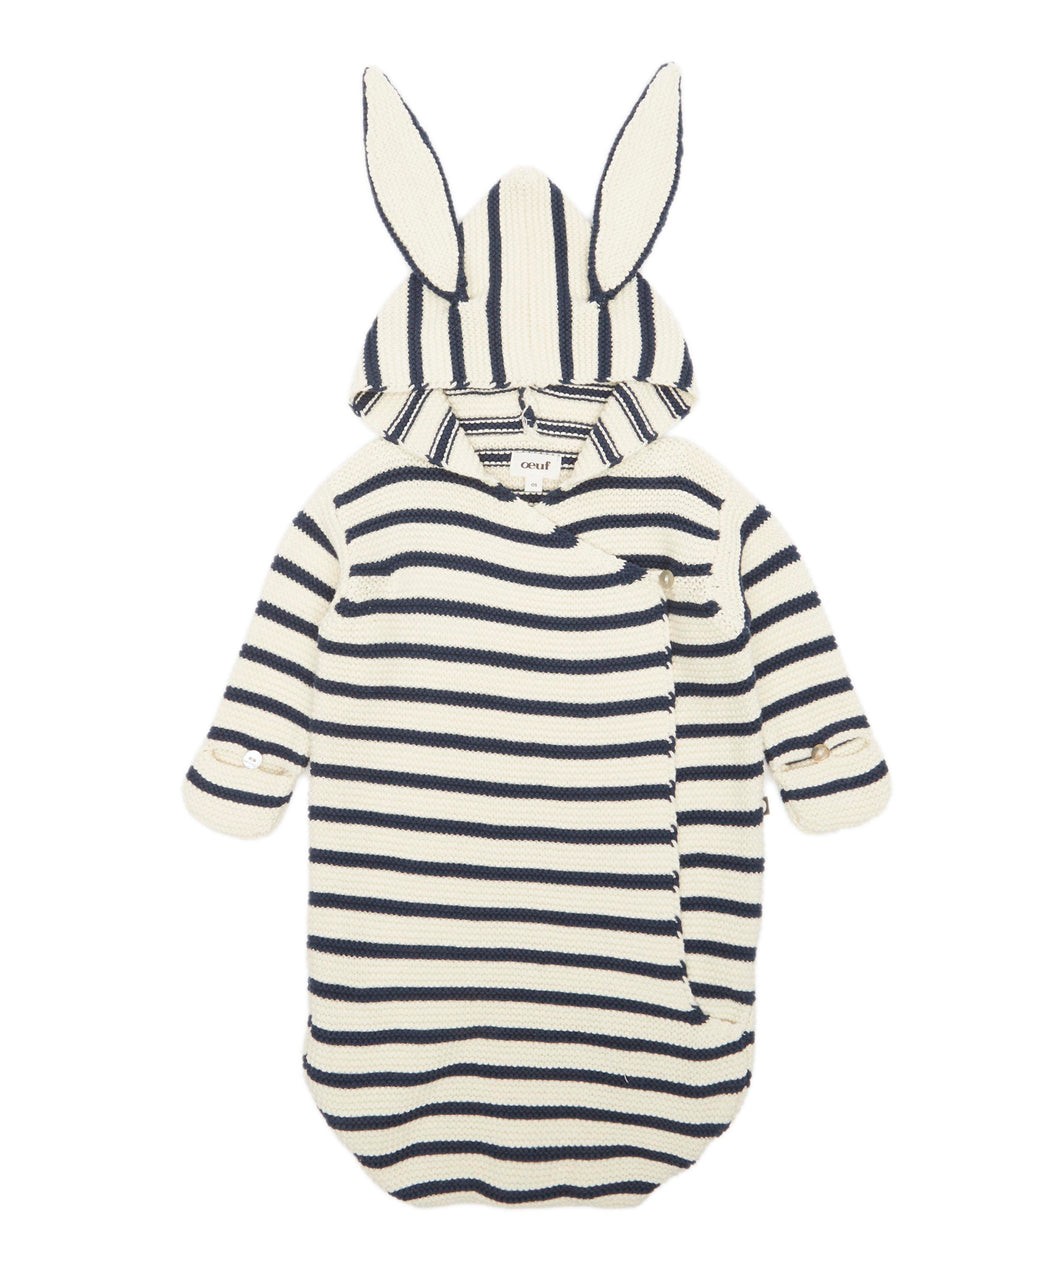 Oeuf Bunny Wrap // White/Navy Stripes by Oeuf - Mini Pop Style